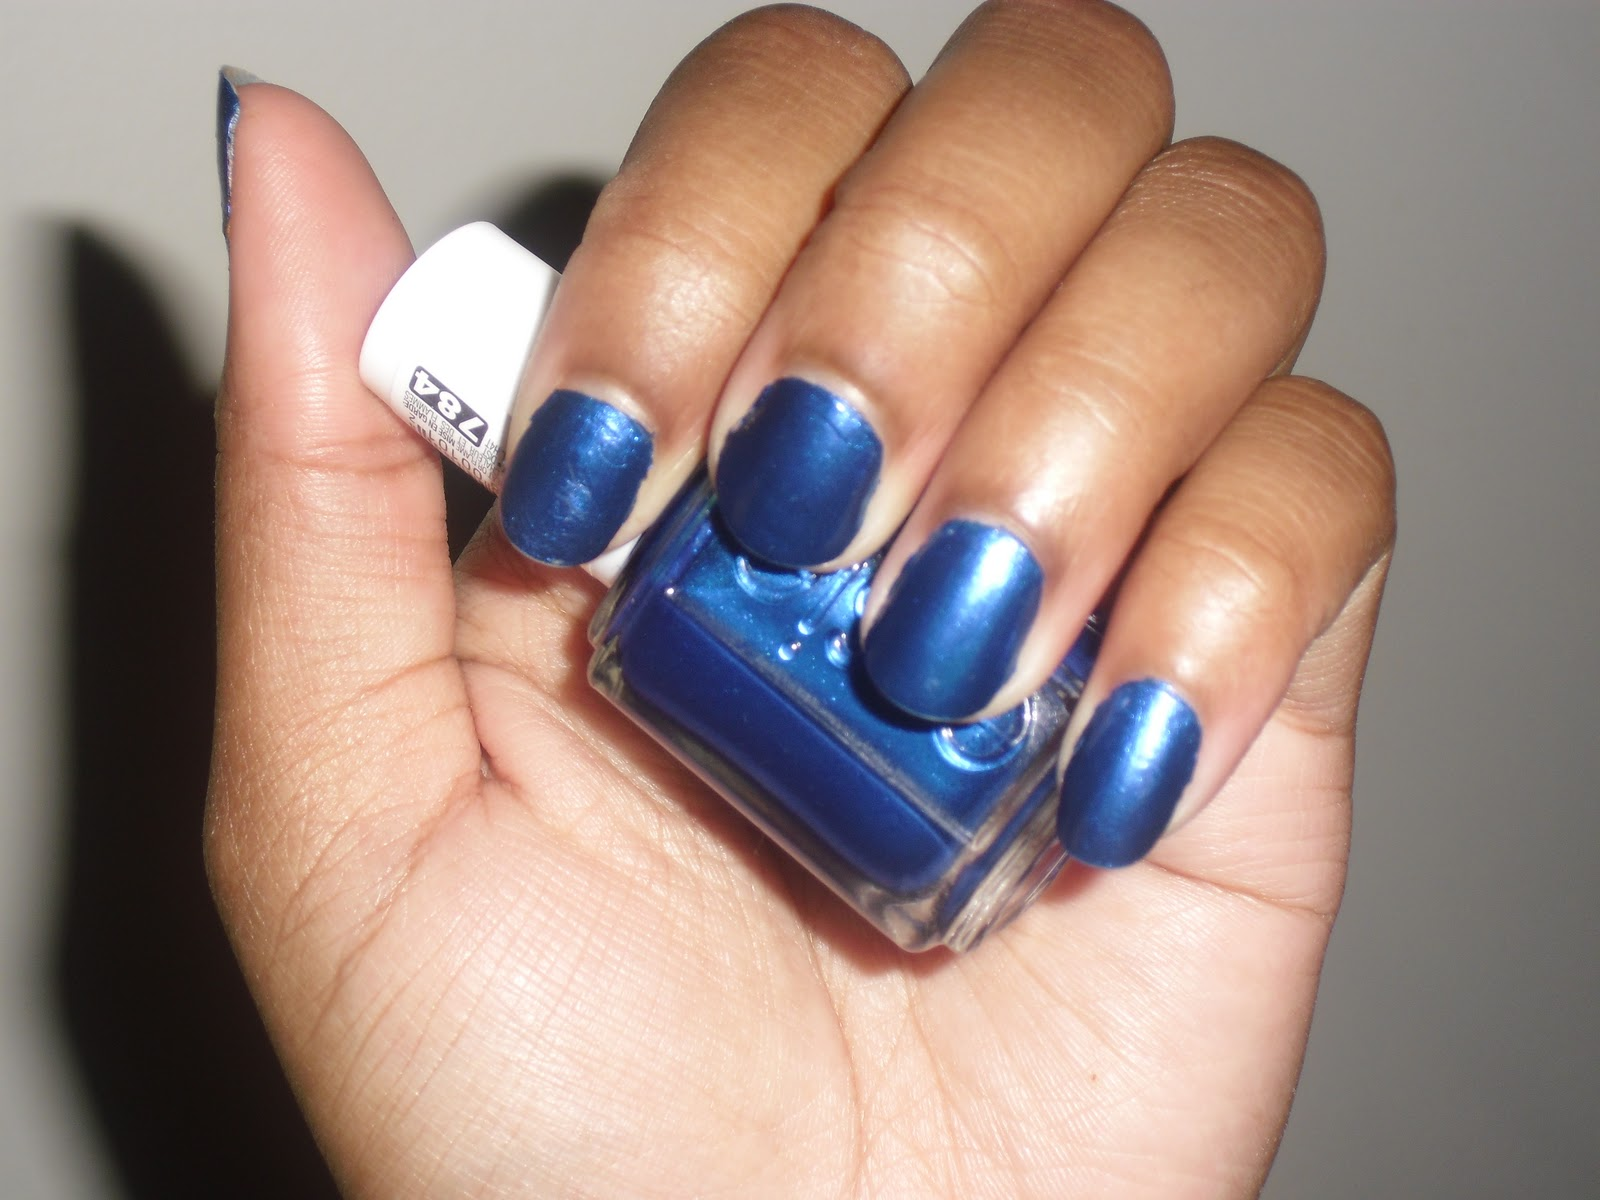 On My Nails: Essie Aruba Blue